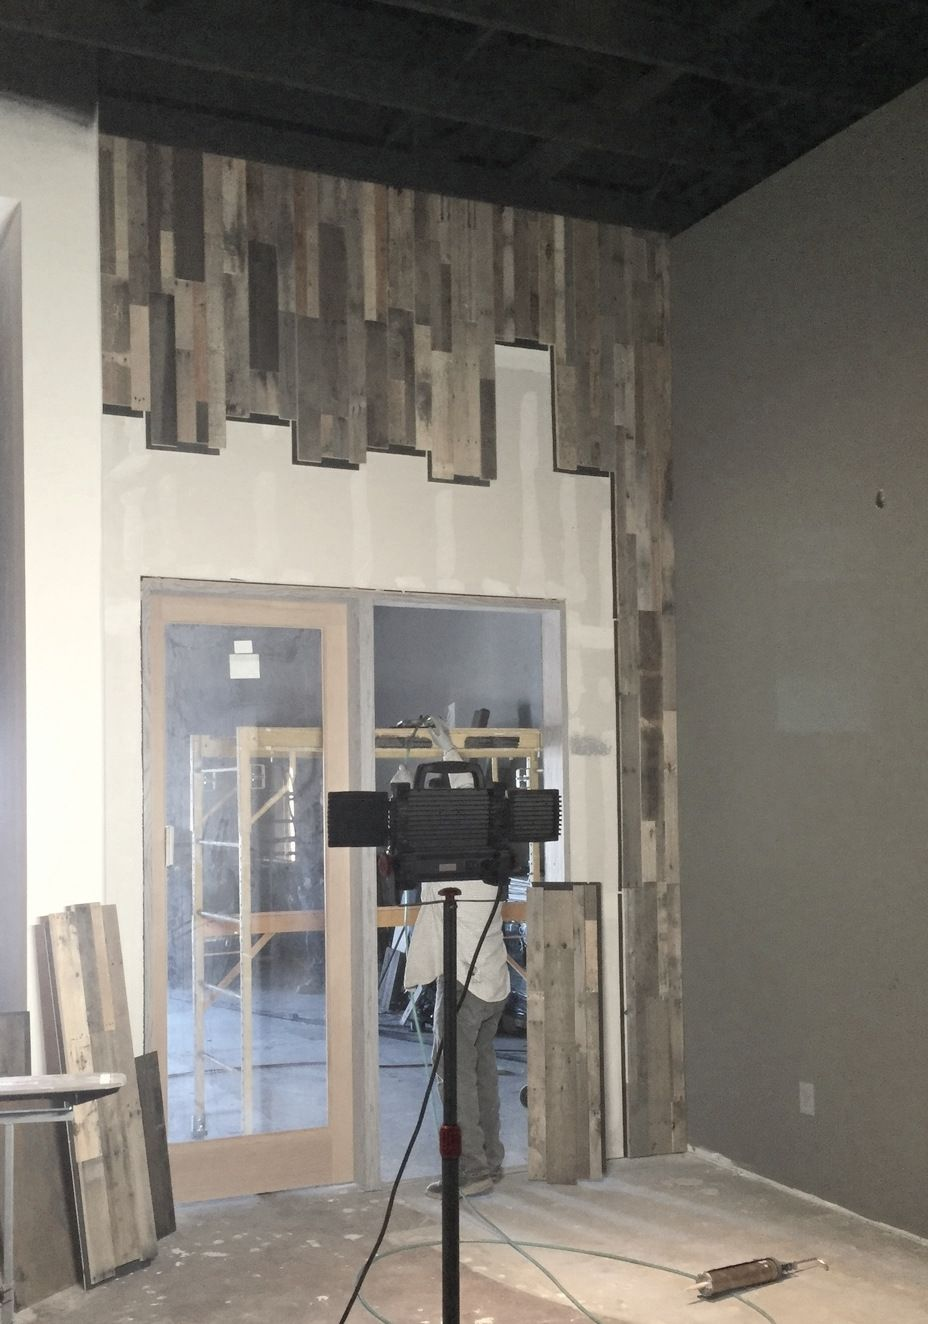 Vertical Installation Of Our Prefabricated Pallet Wood Wall